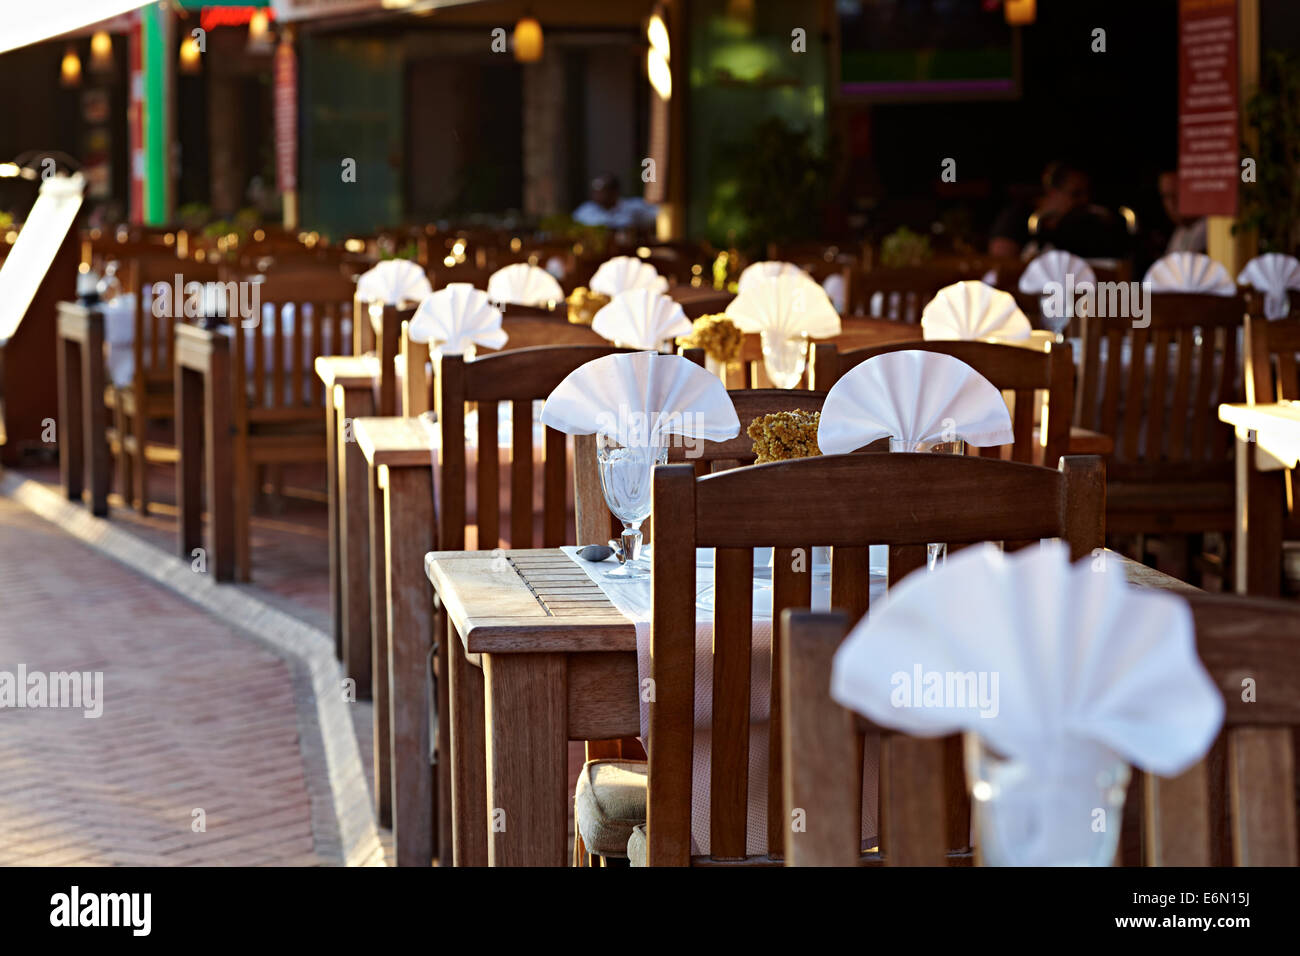 Street side dining, great hospitality, modern cuisine and restaurants await travellers visiting Bitez, Turkey - Stock Image